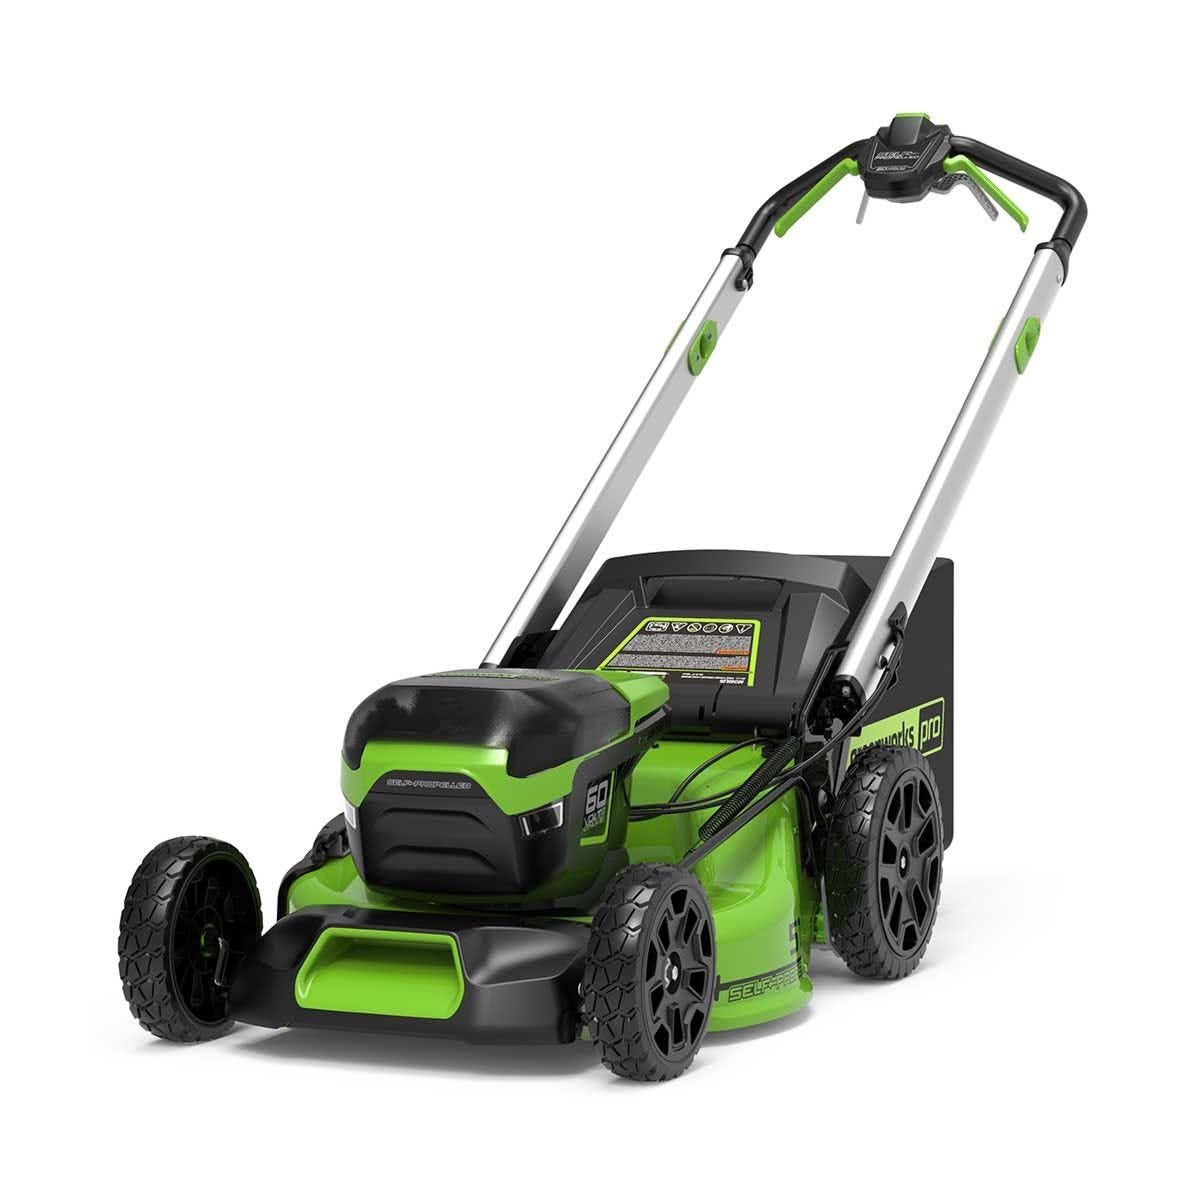 Greenworks 60V DigiPro 51cm Self Propelled Cordless Lawnmower (Tool Only)